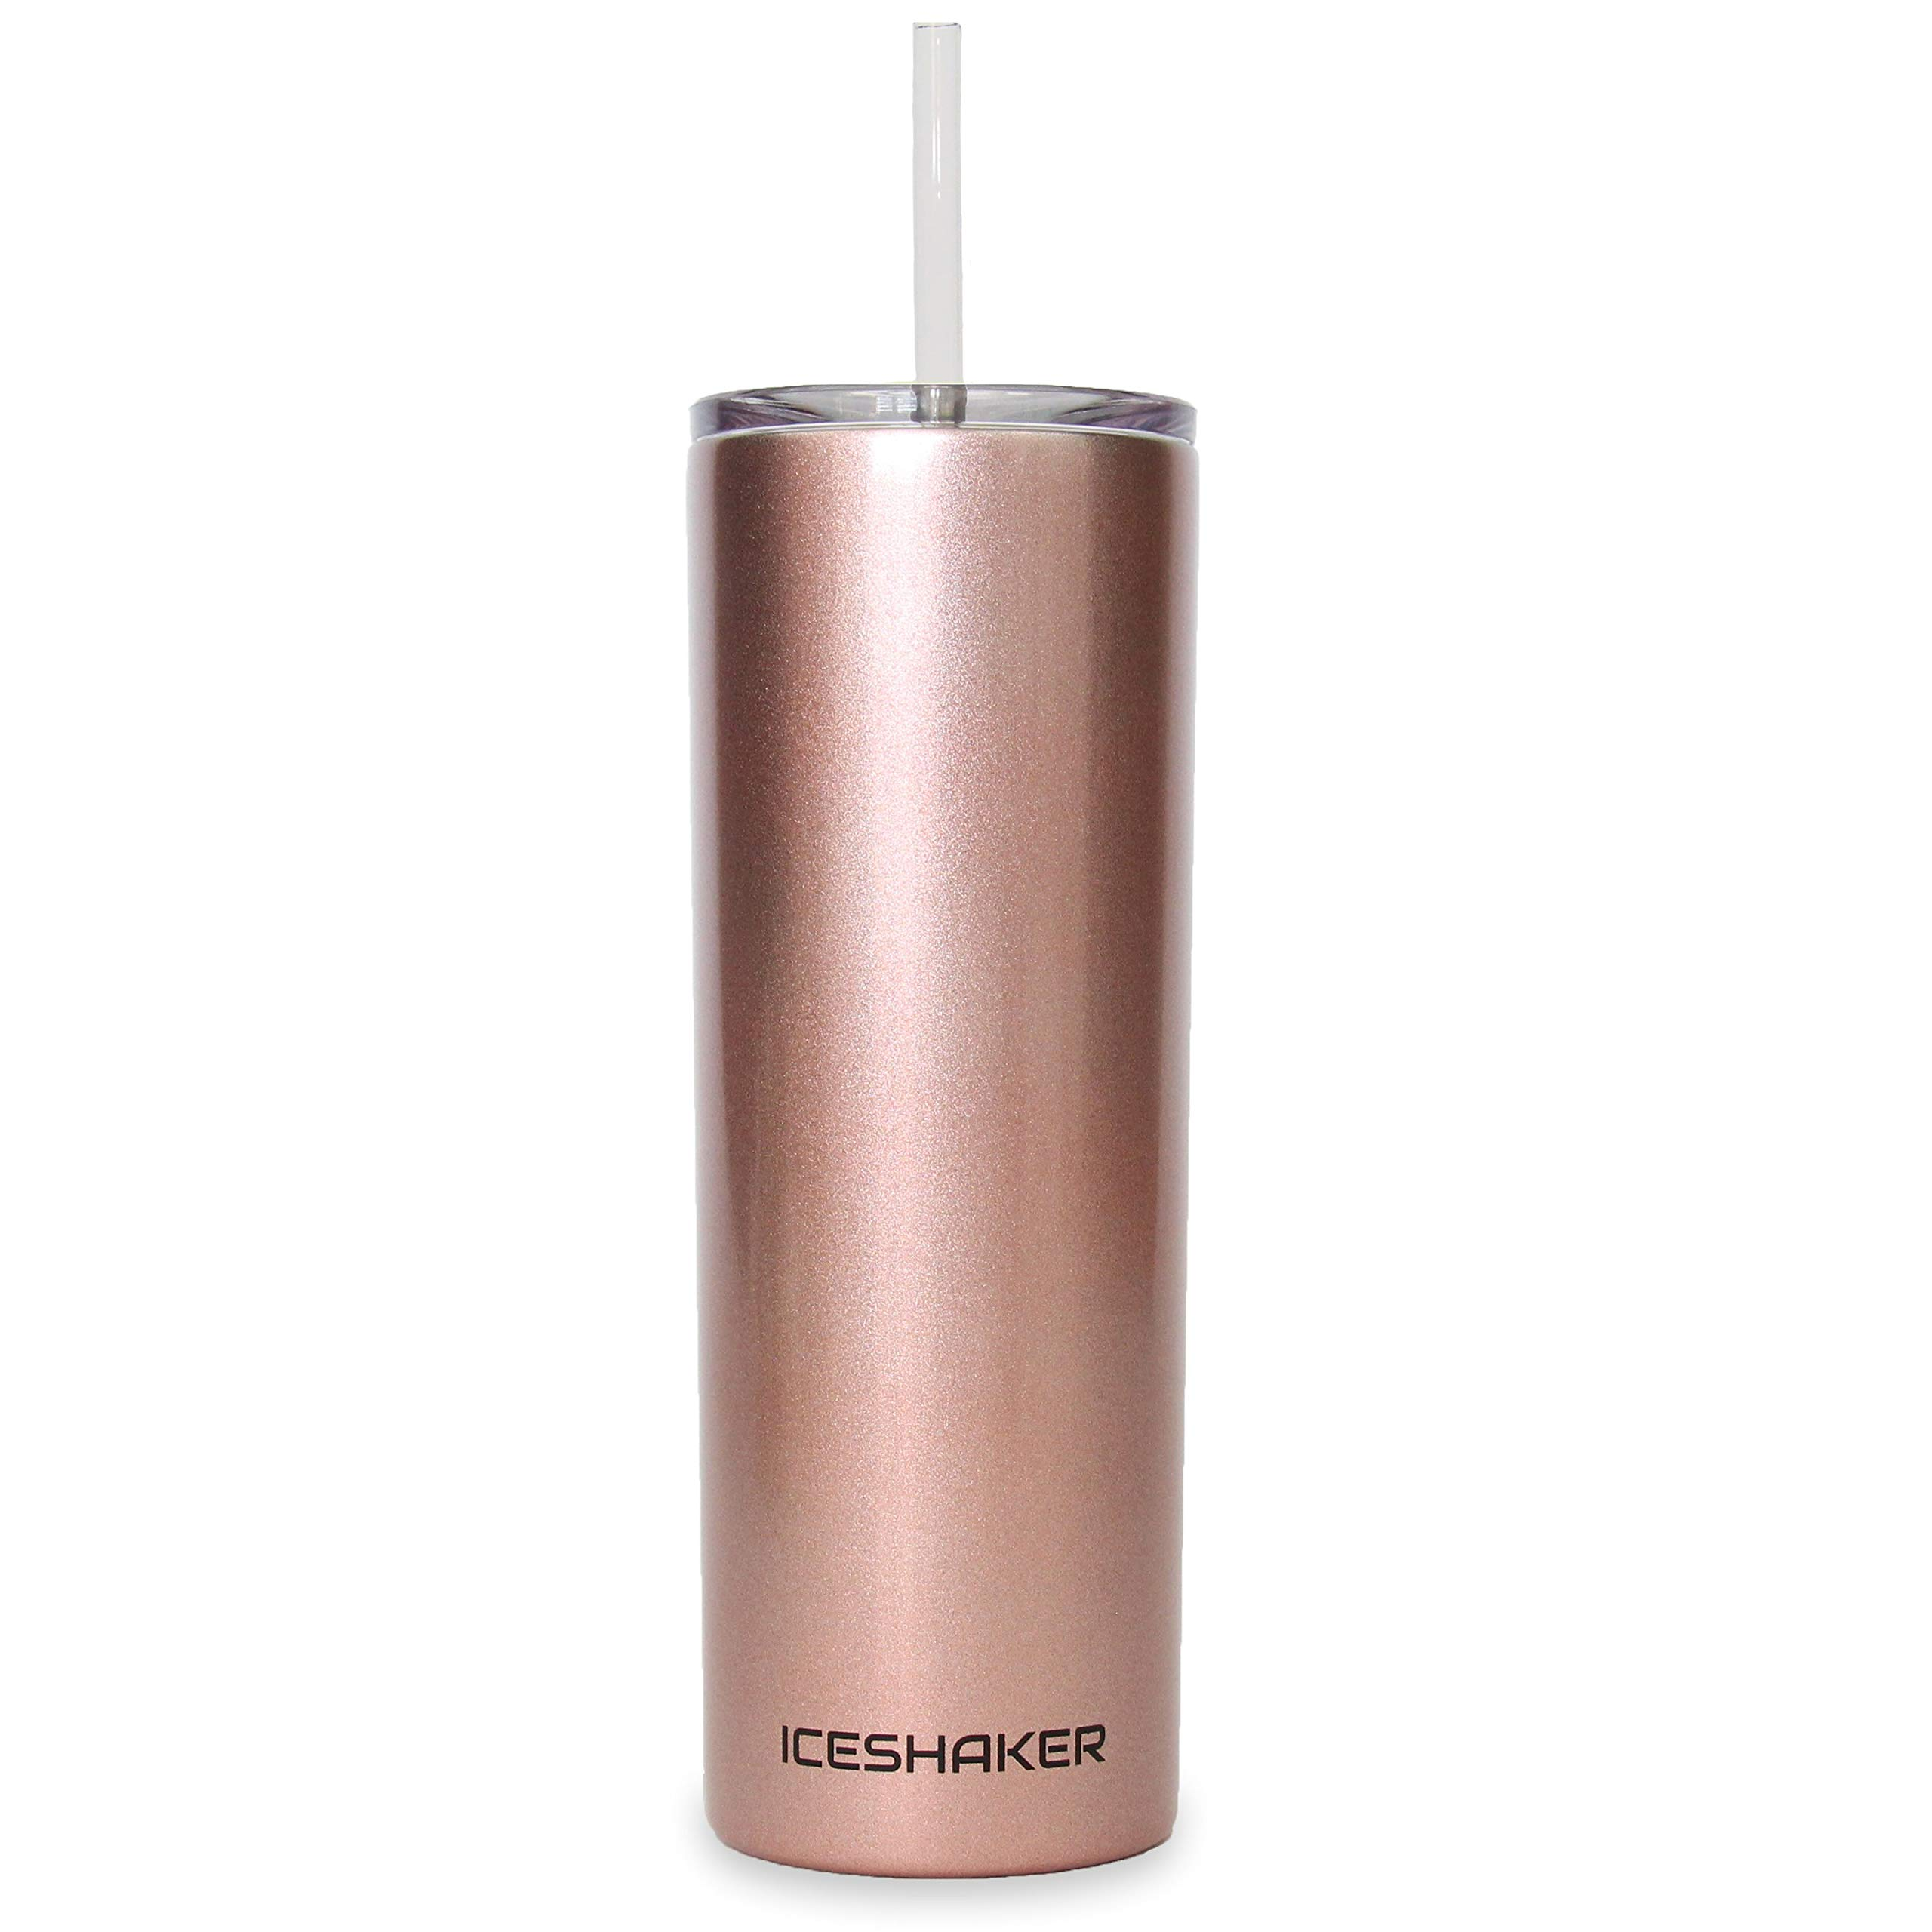 Ice Shaker 20 oz Skinny Tumbler (Rose Gold)- Stainless Steel Tumbler & Insulated Water Bottle With Straw - Vacuum Insulated Tumbler For Hot and Cold Drinks - Tumbler With Lid Holds Ice for 30+ Hours